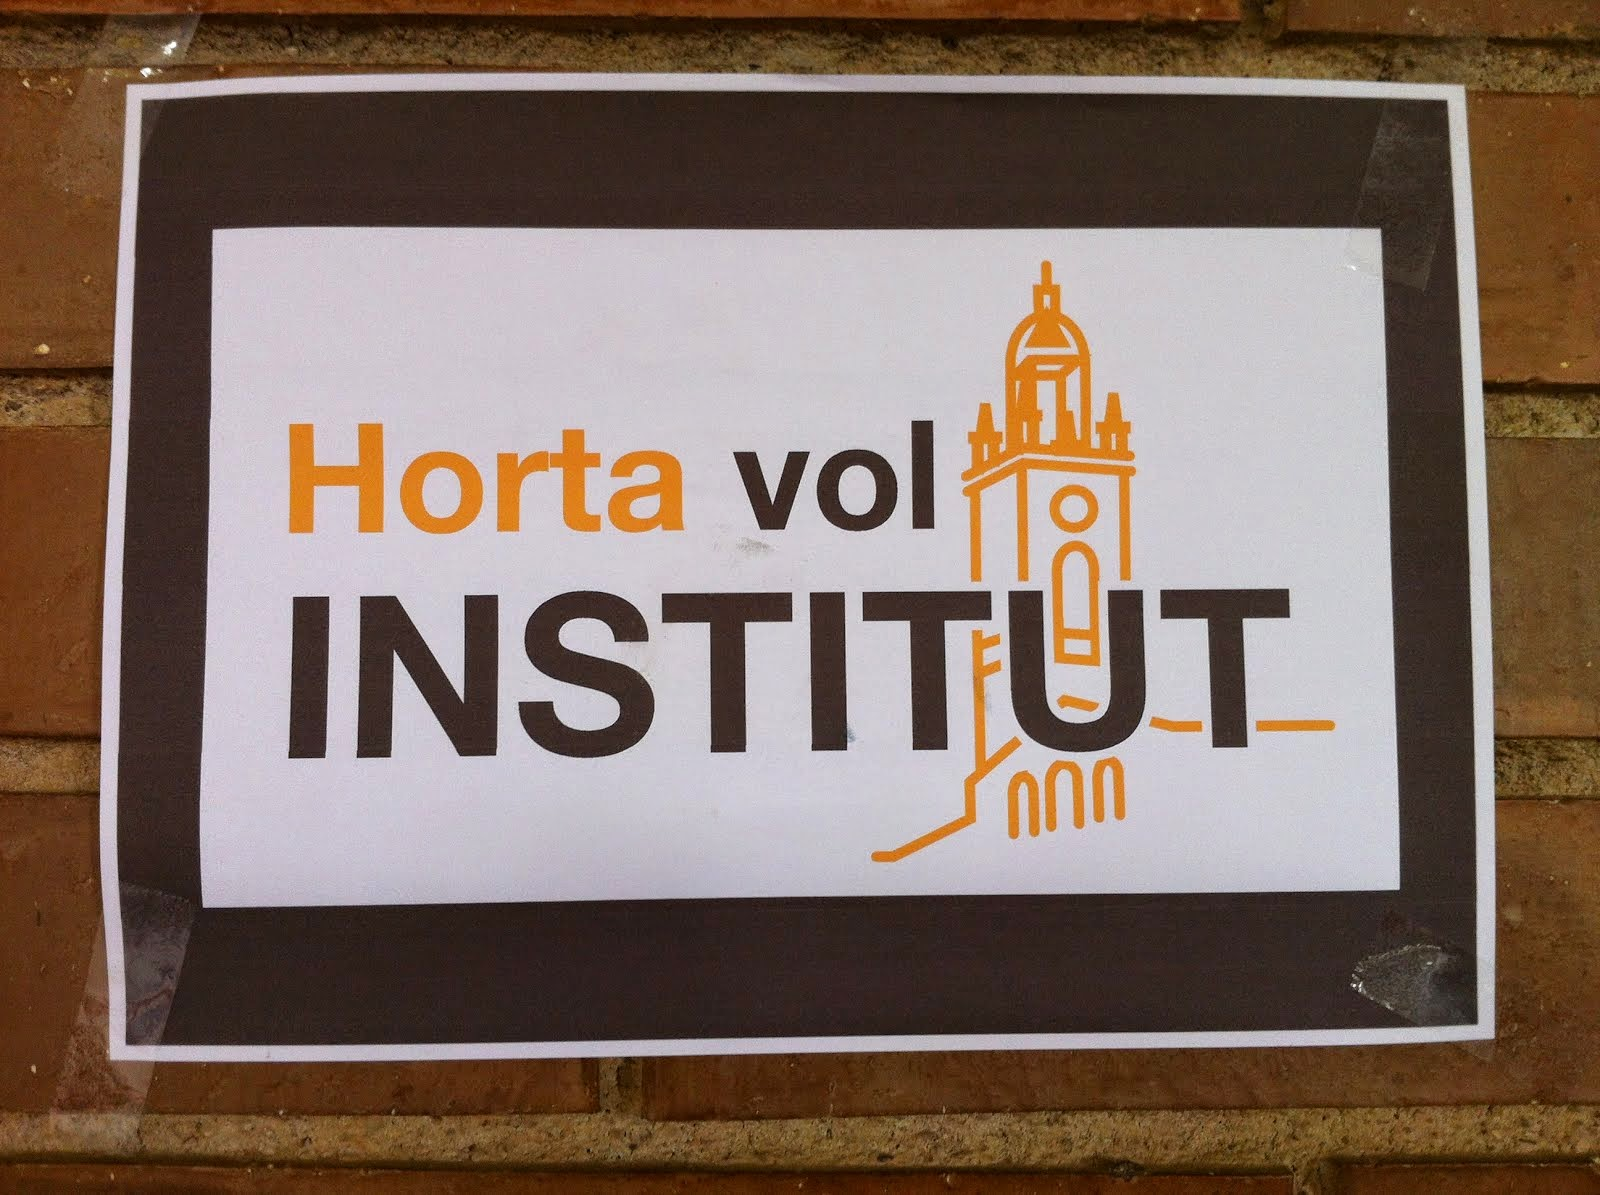 Horta vol Institut